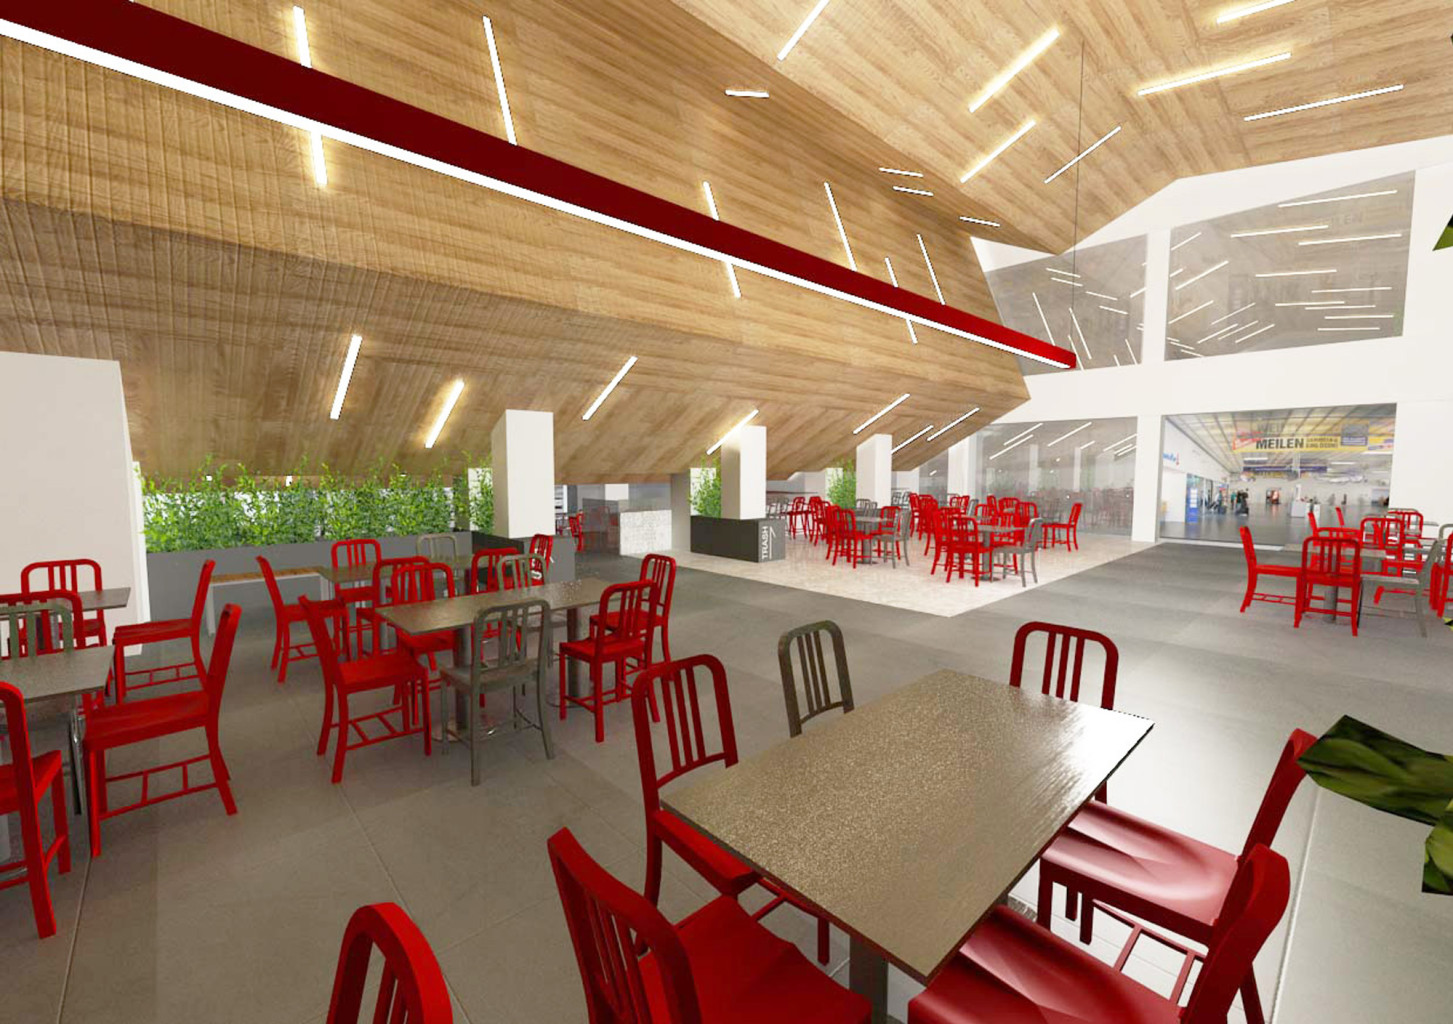 mia food court malta render 4